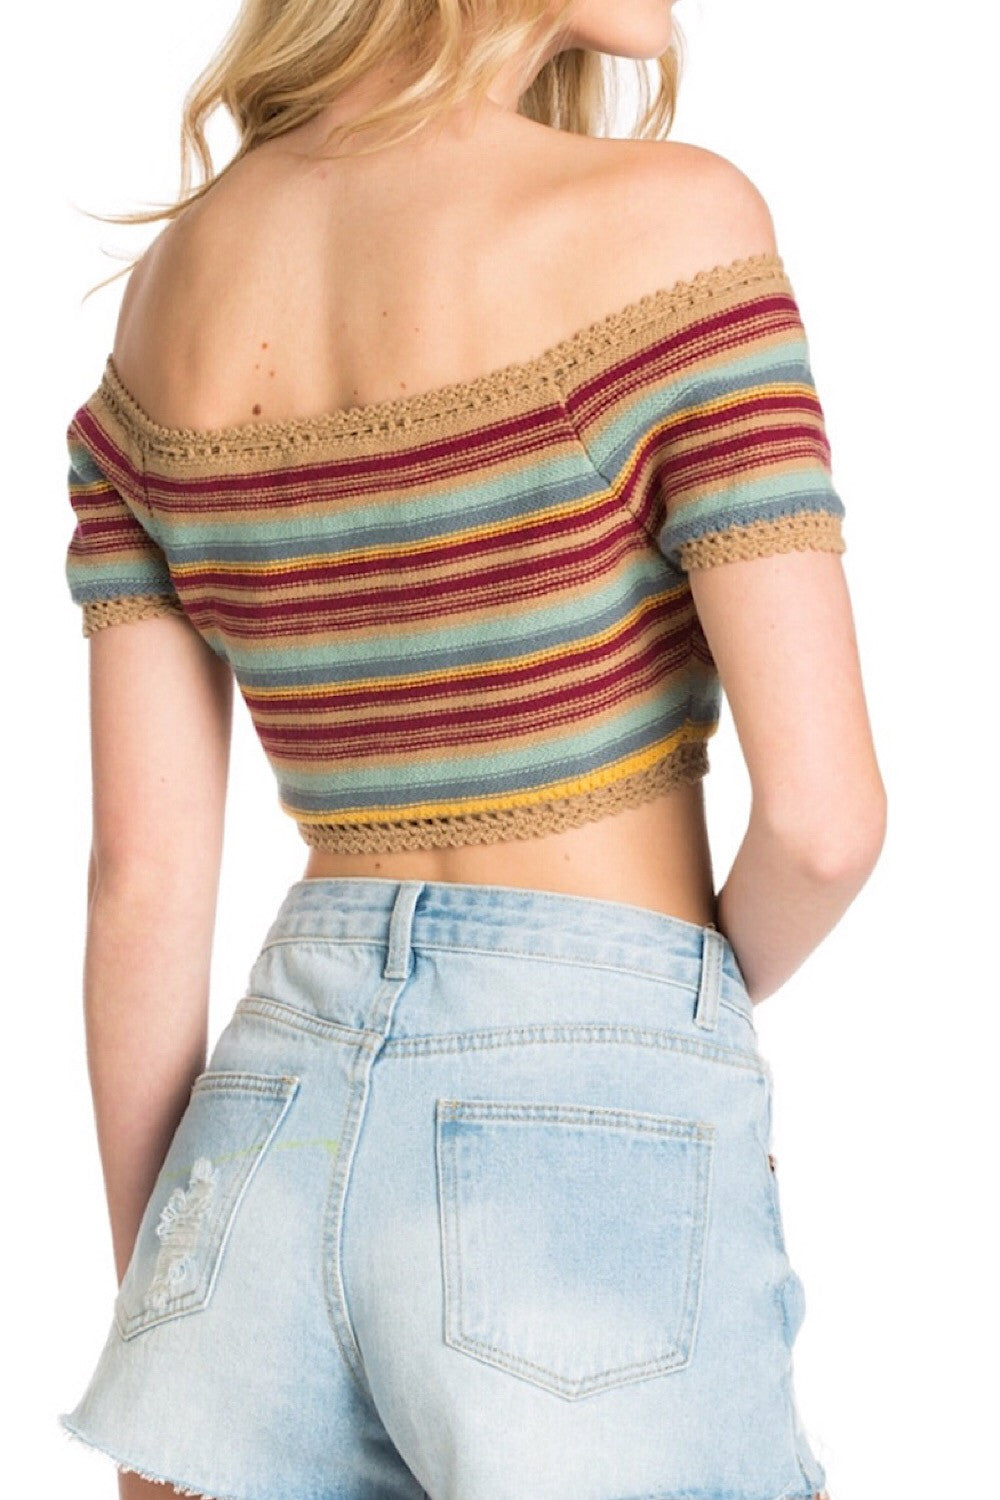 That Thing You Do Retro Sweater Crop